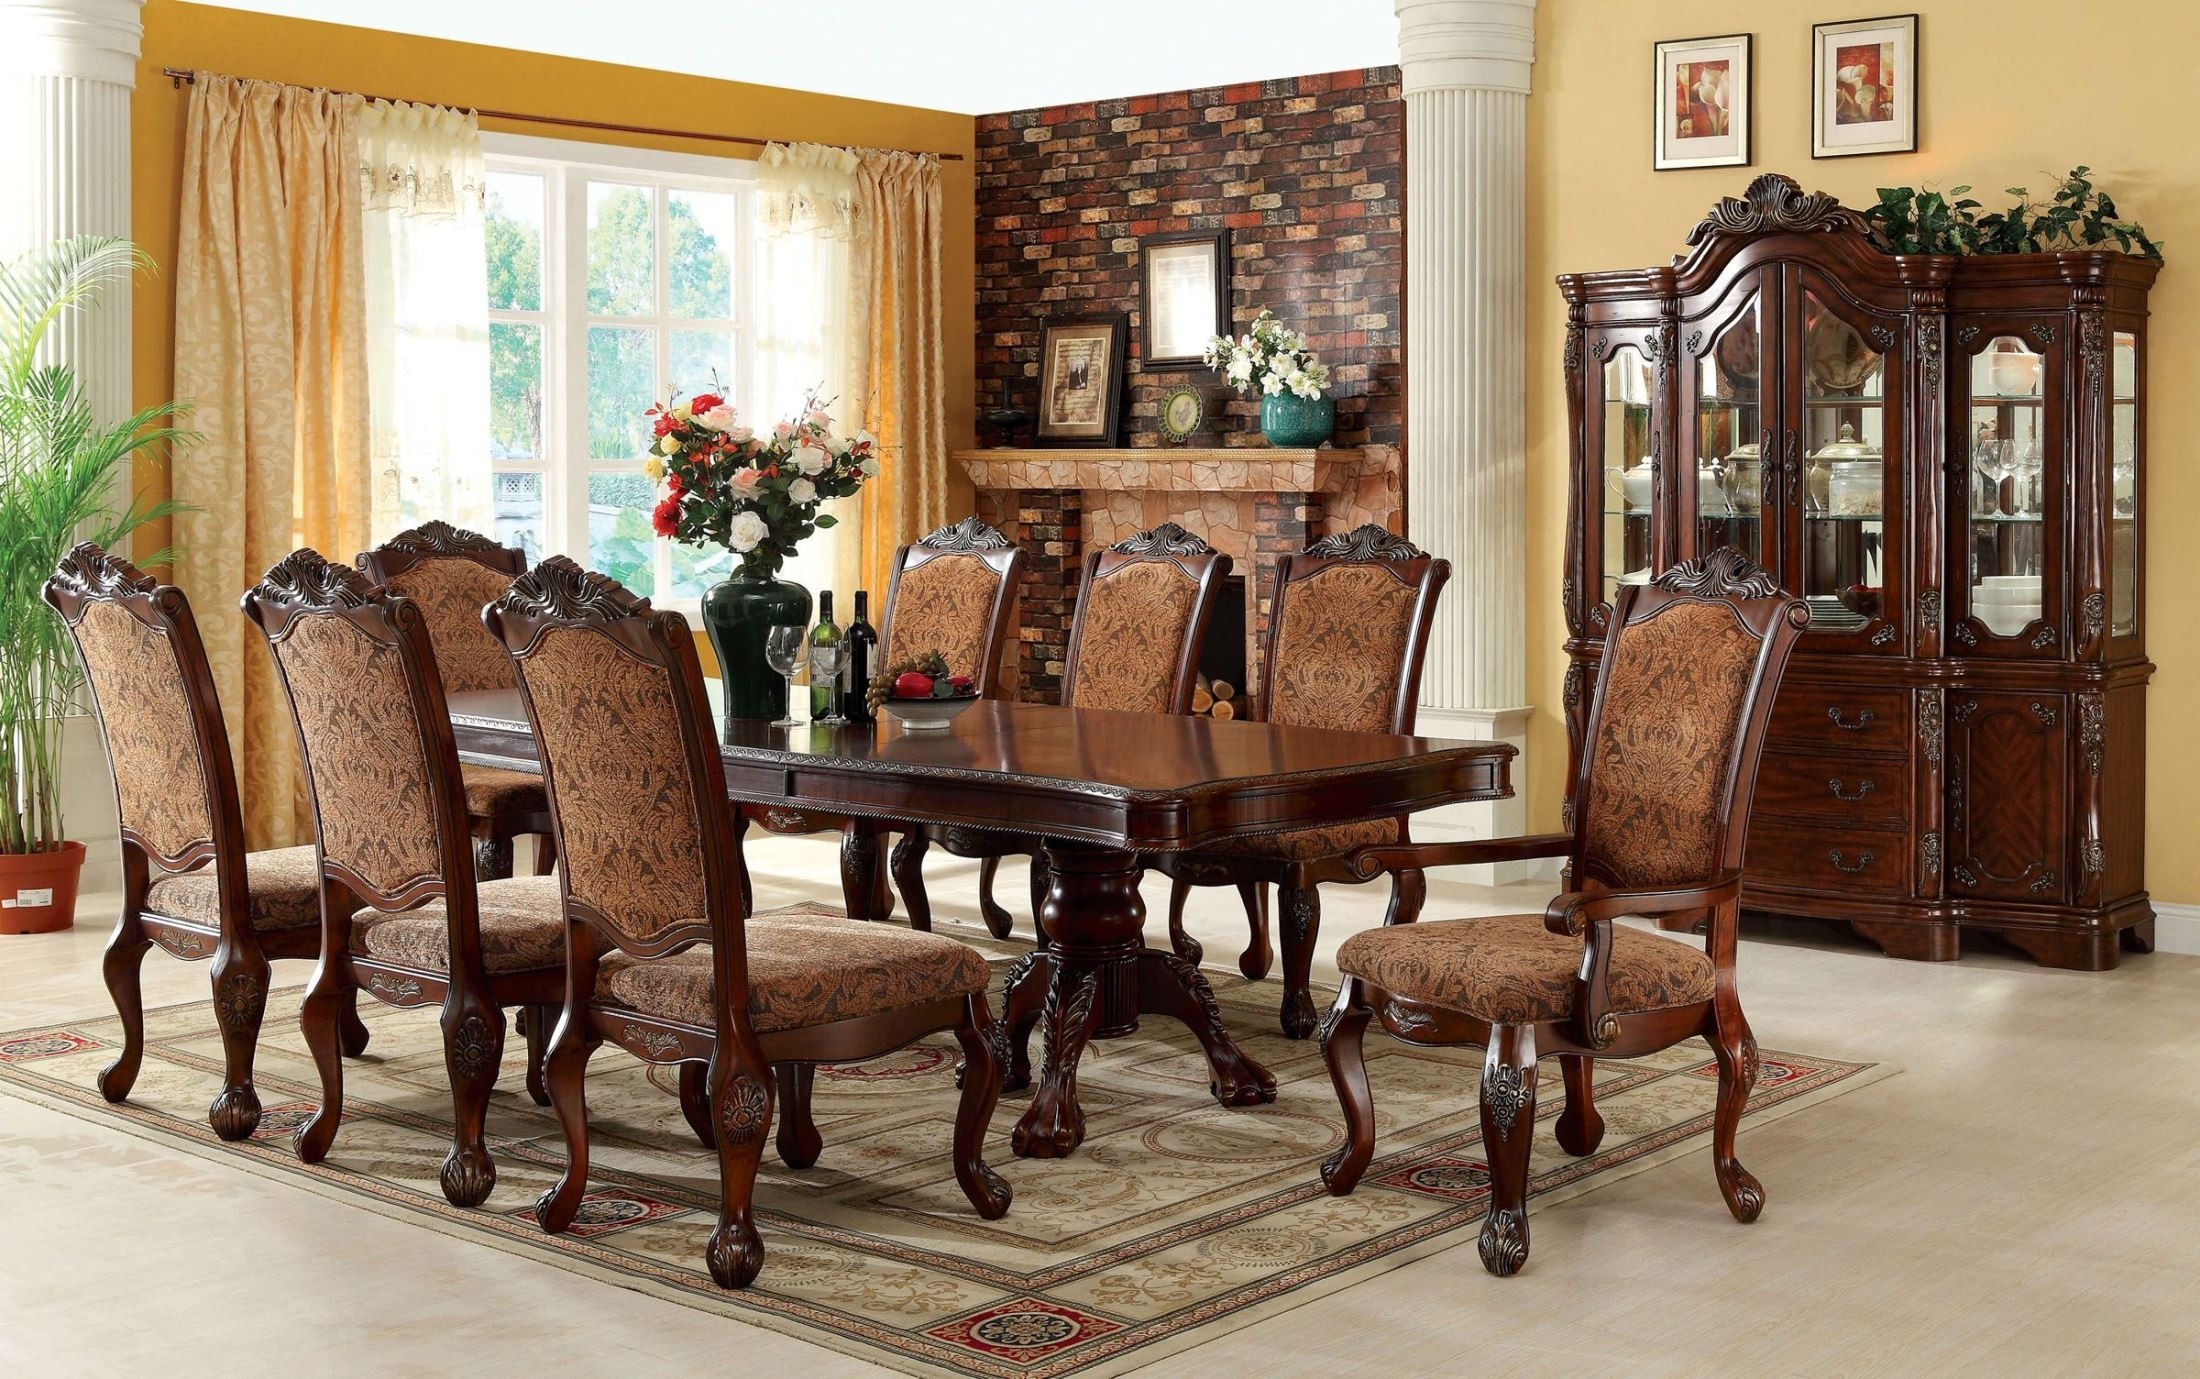 Cromwell antique cherry formal dining room set cm3103t for Dining room table sets